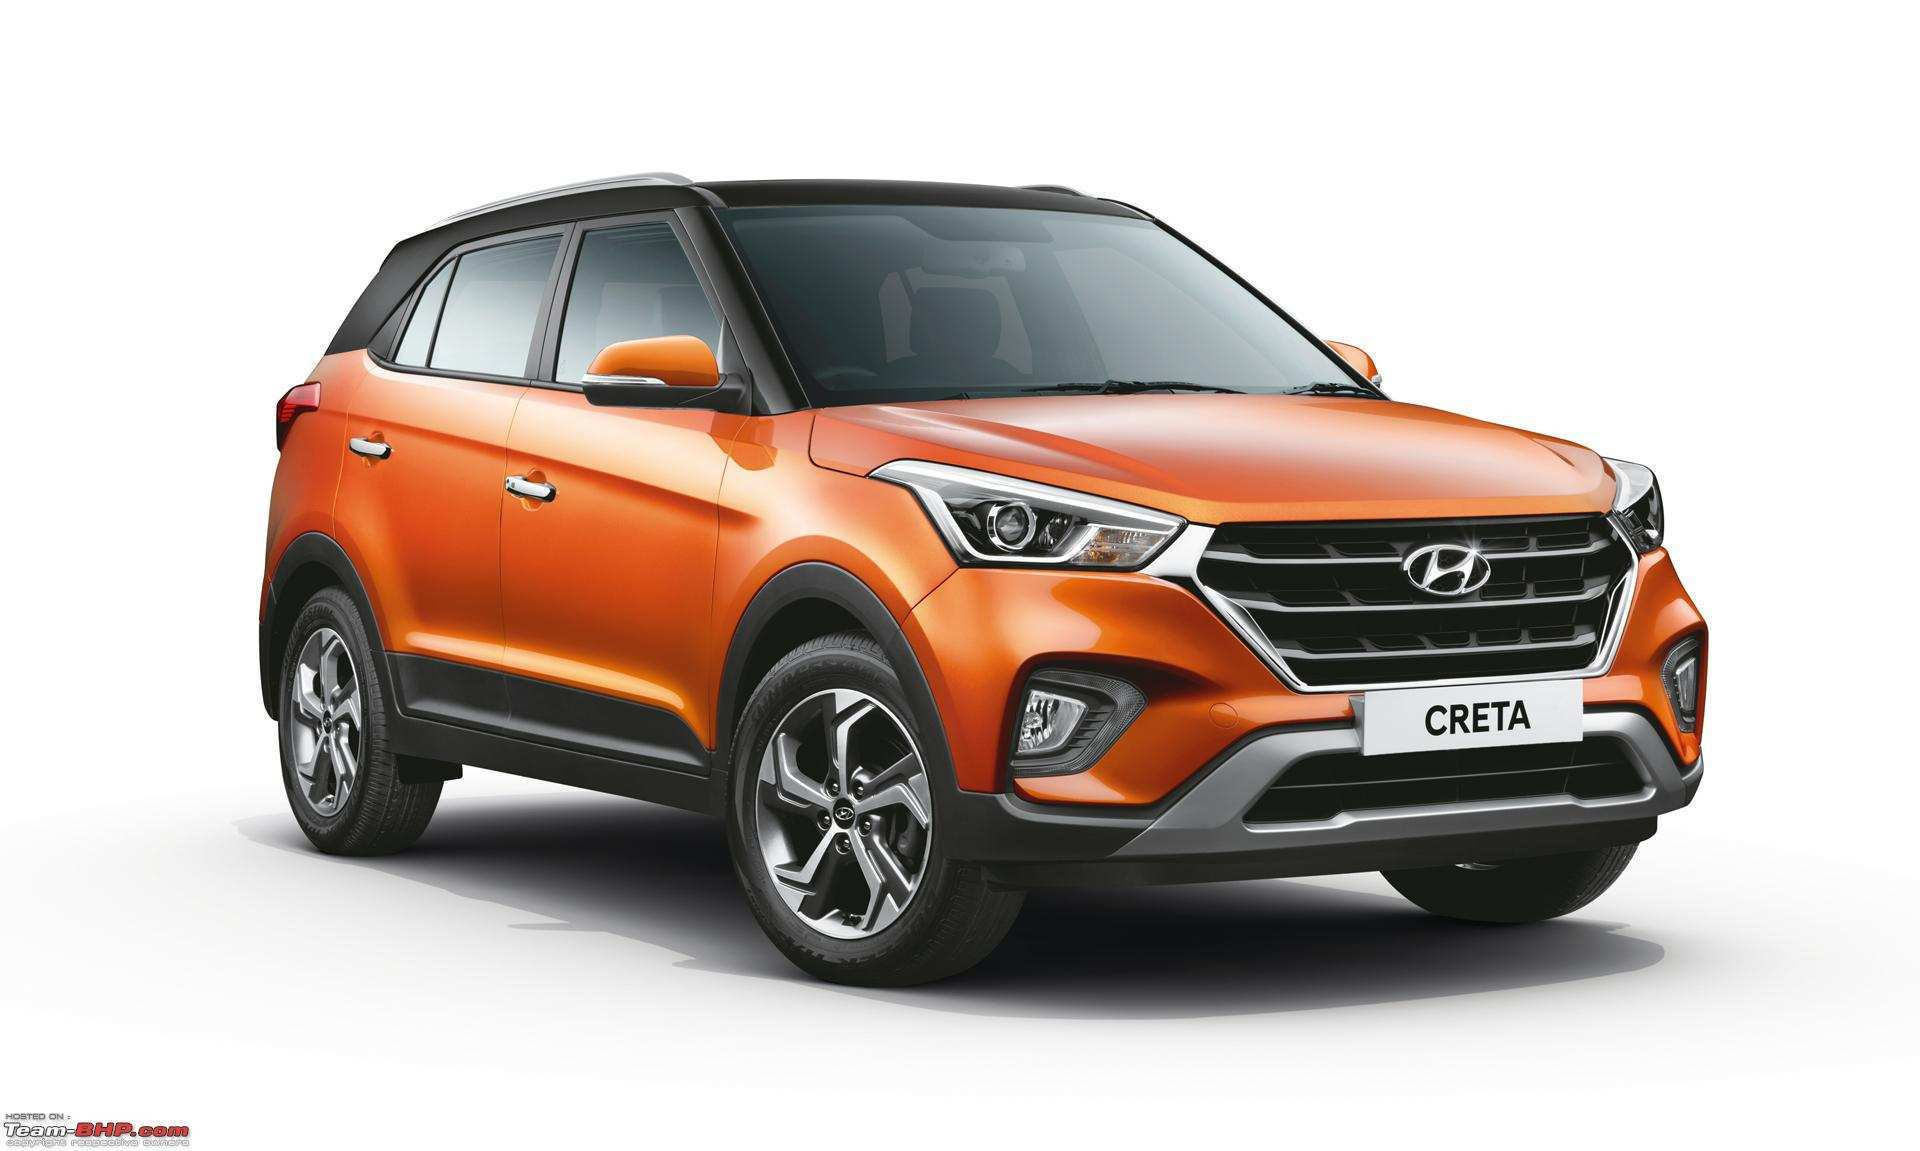 28 The 2020 Hyundai I20 Picture